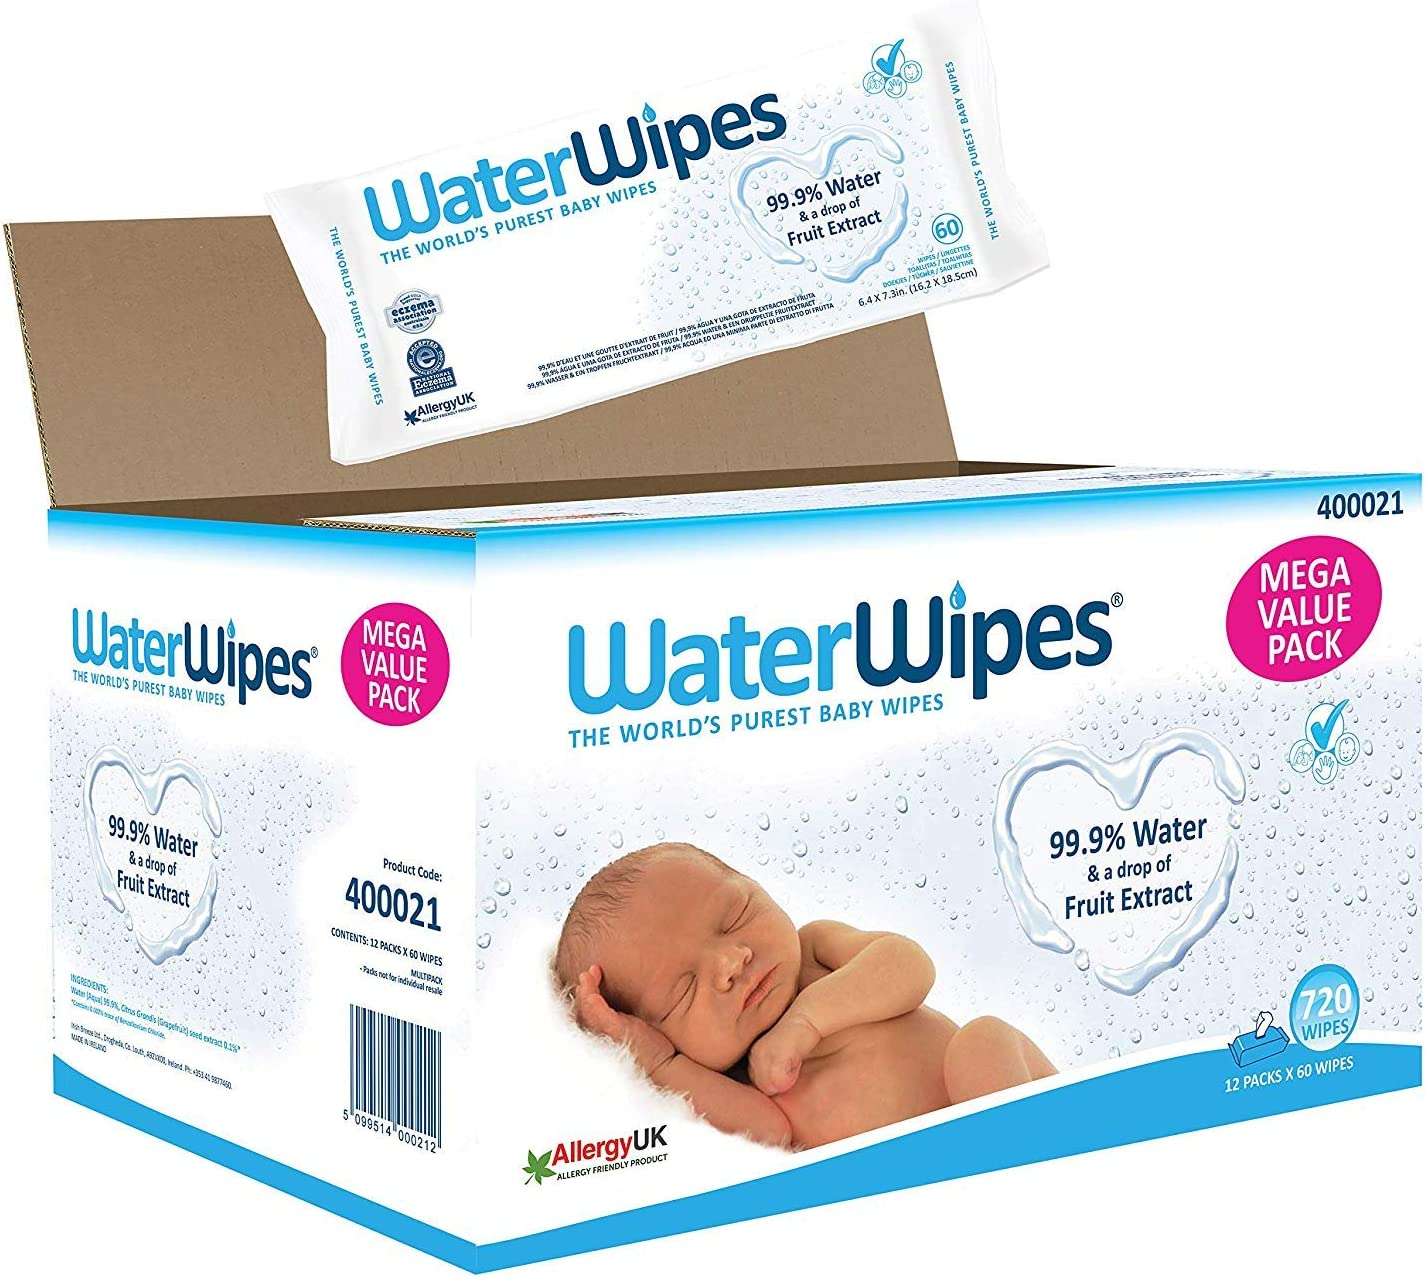 60 St/ück WaterWipes WaterWipes Reinigungst/ücher